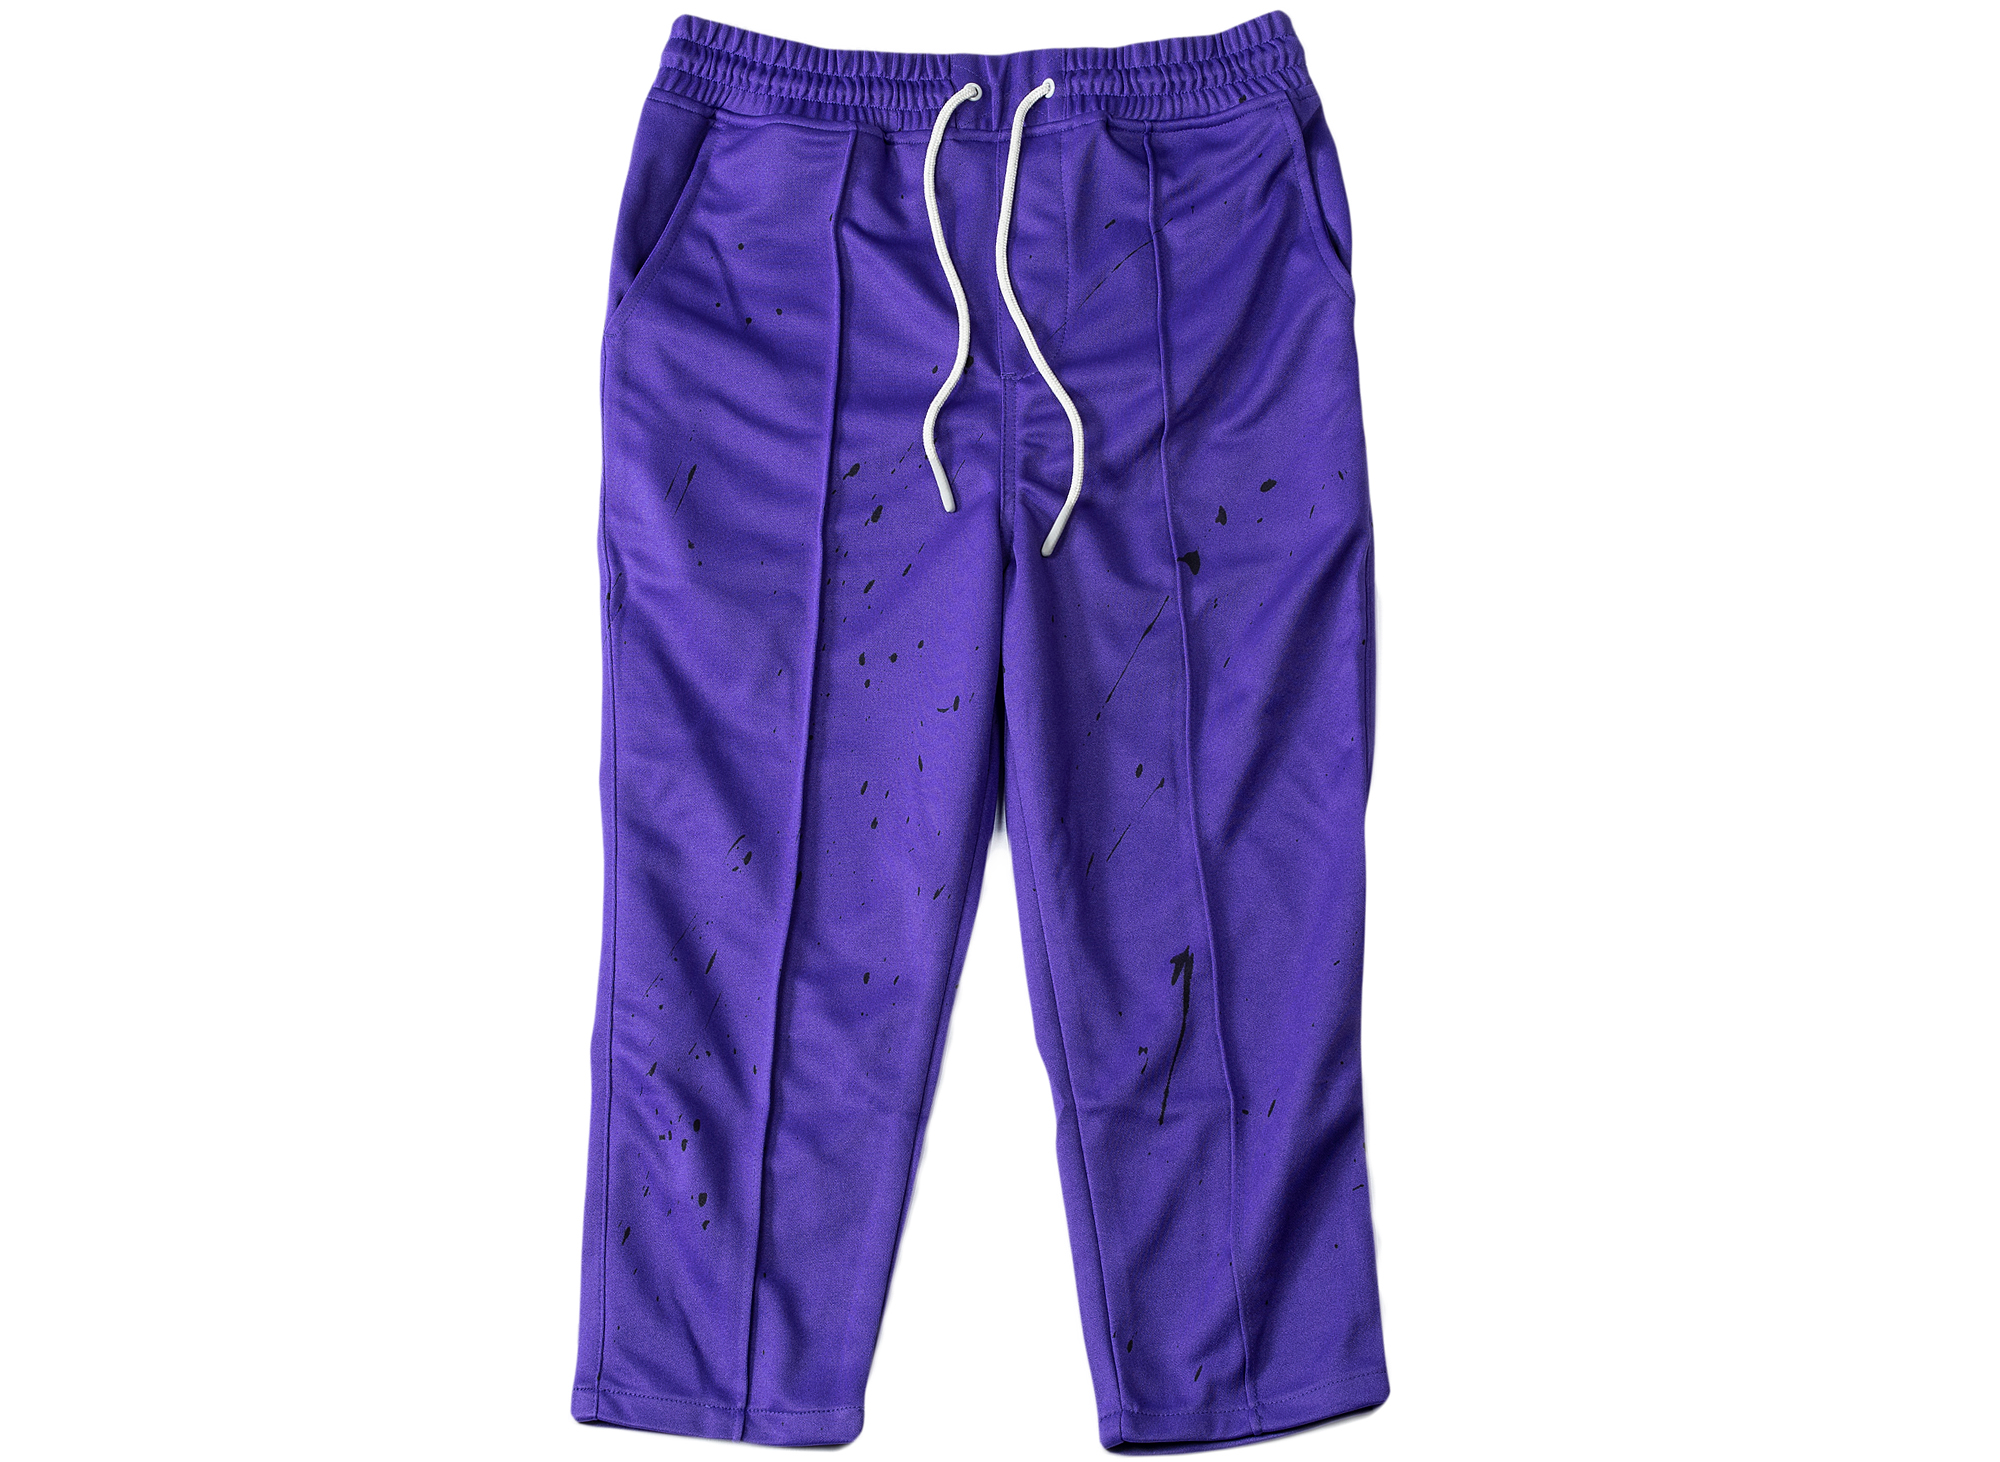 Honor the Gift Artisan Fleece Track Pants in Purple